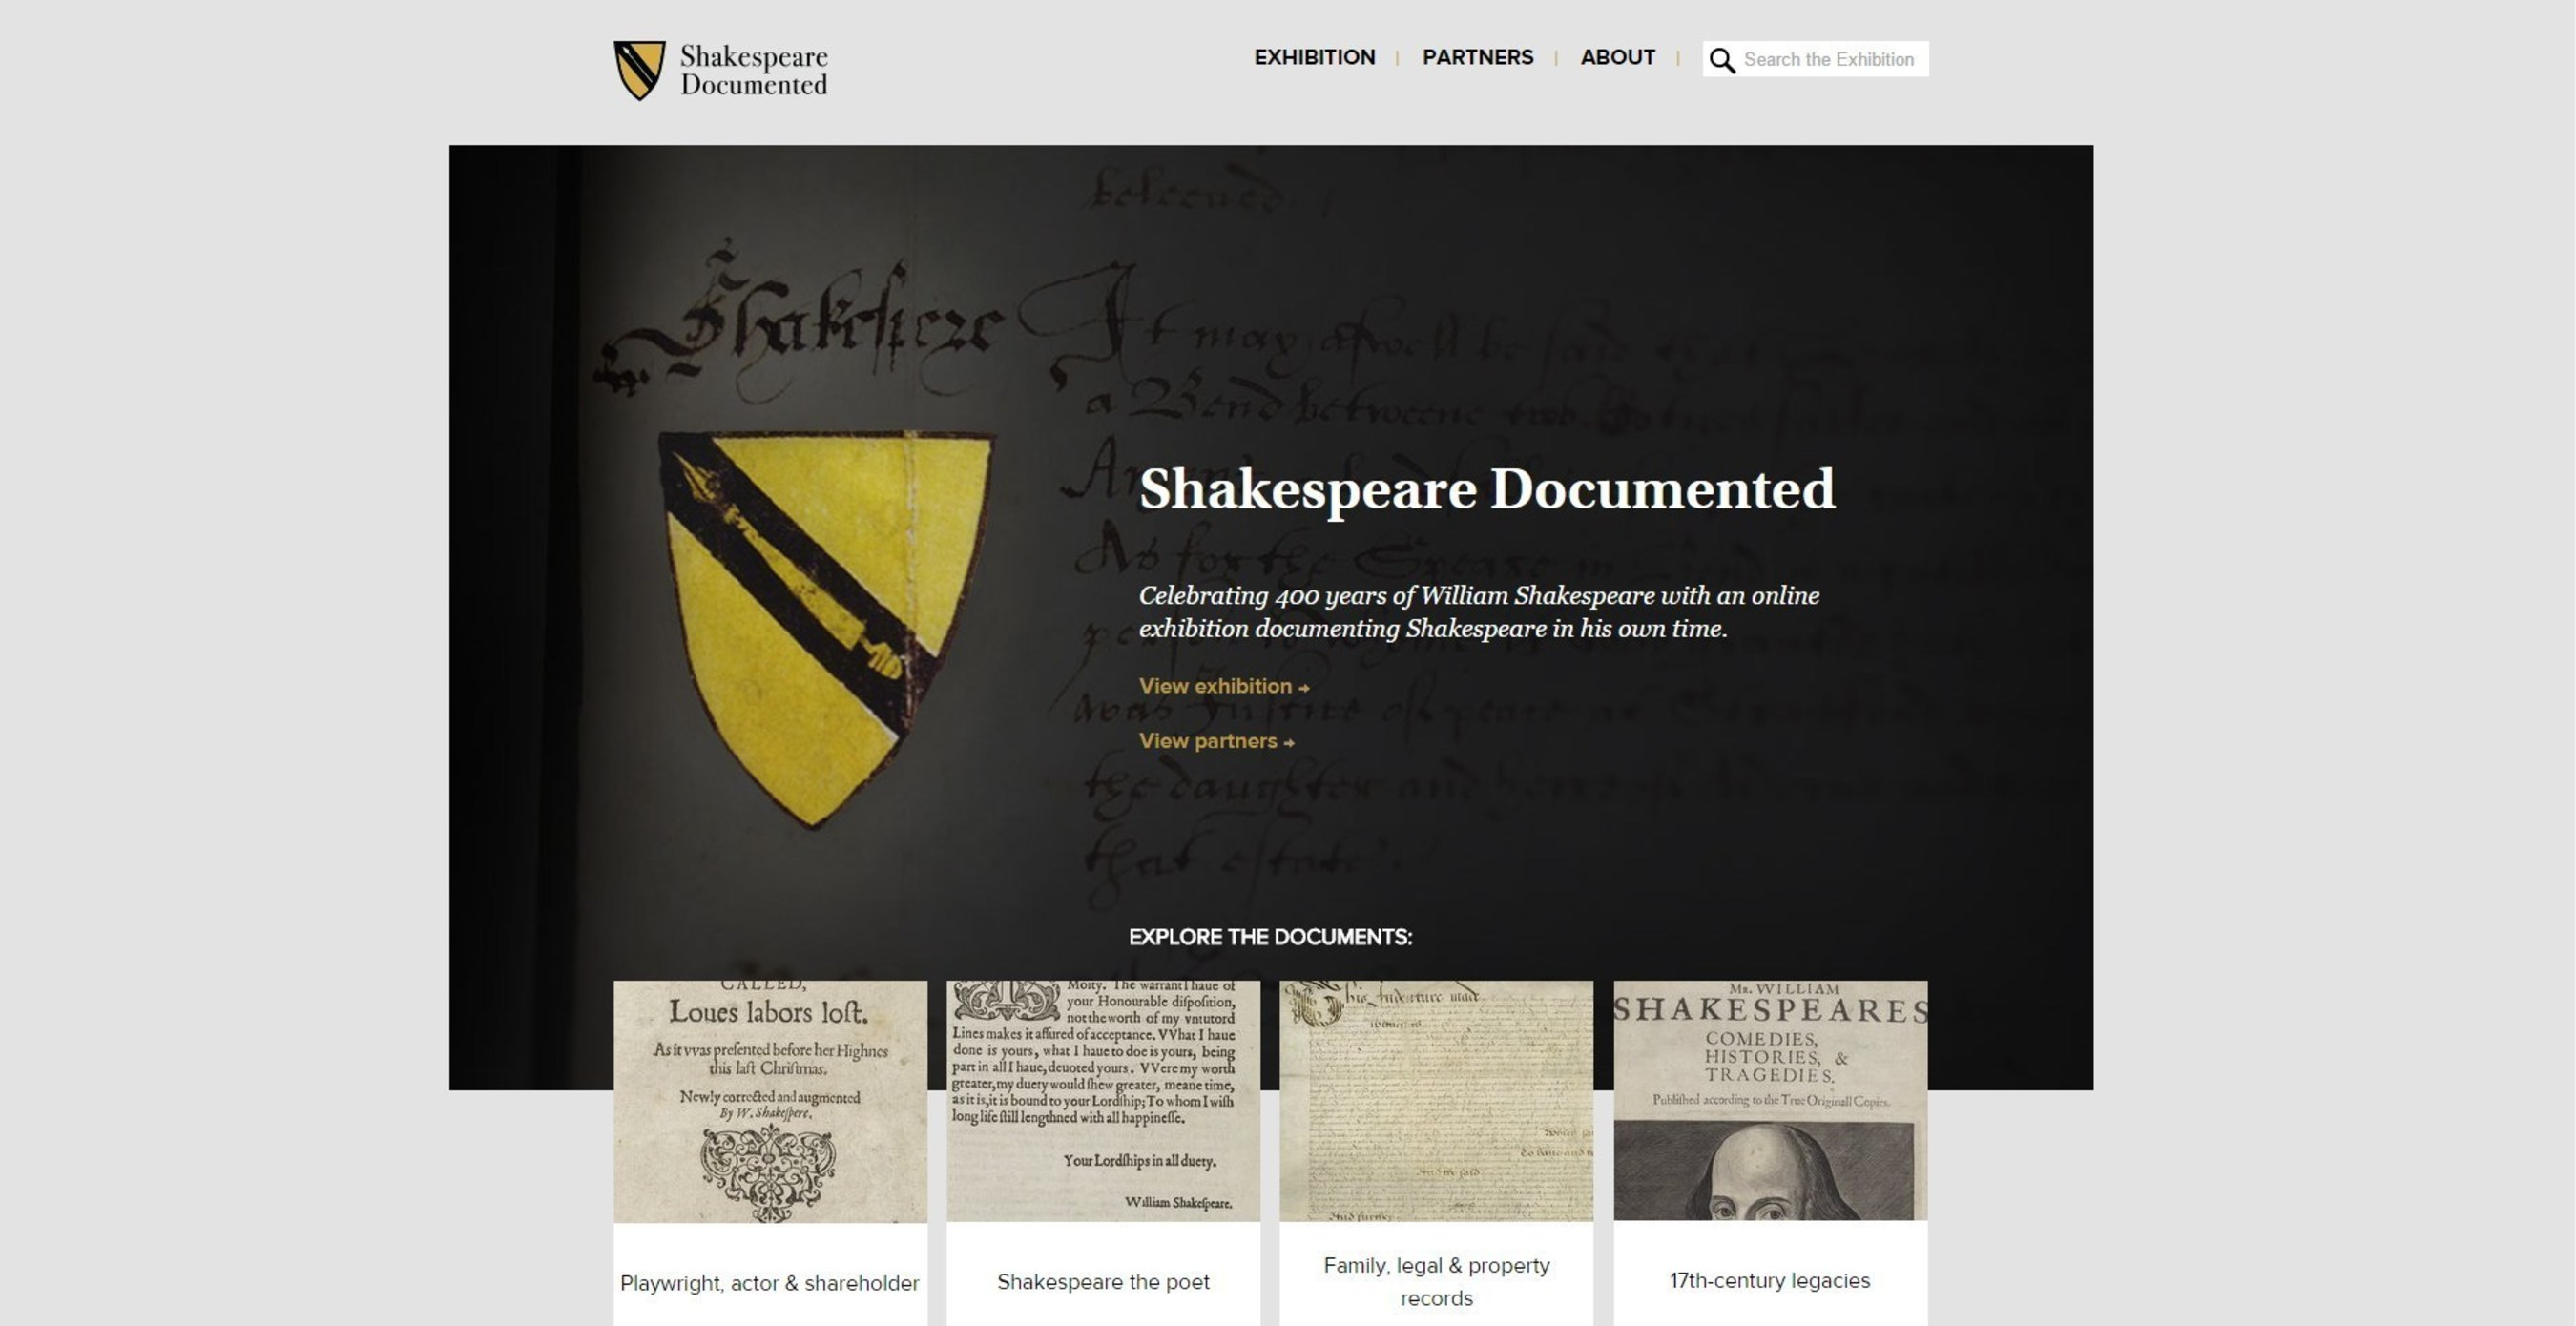 Shakespeare Documented is a new online resource sharing the manuscripts and printed books that document the life and career of William Shakespeare.